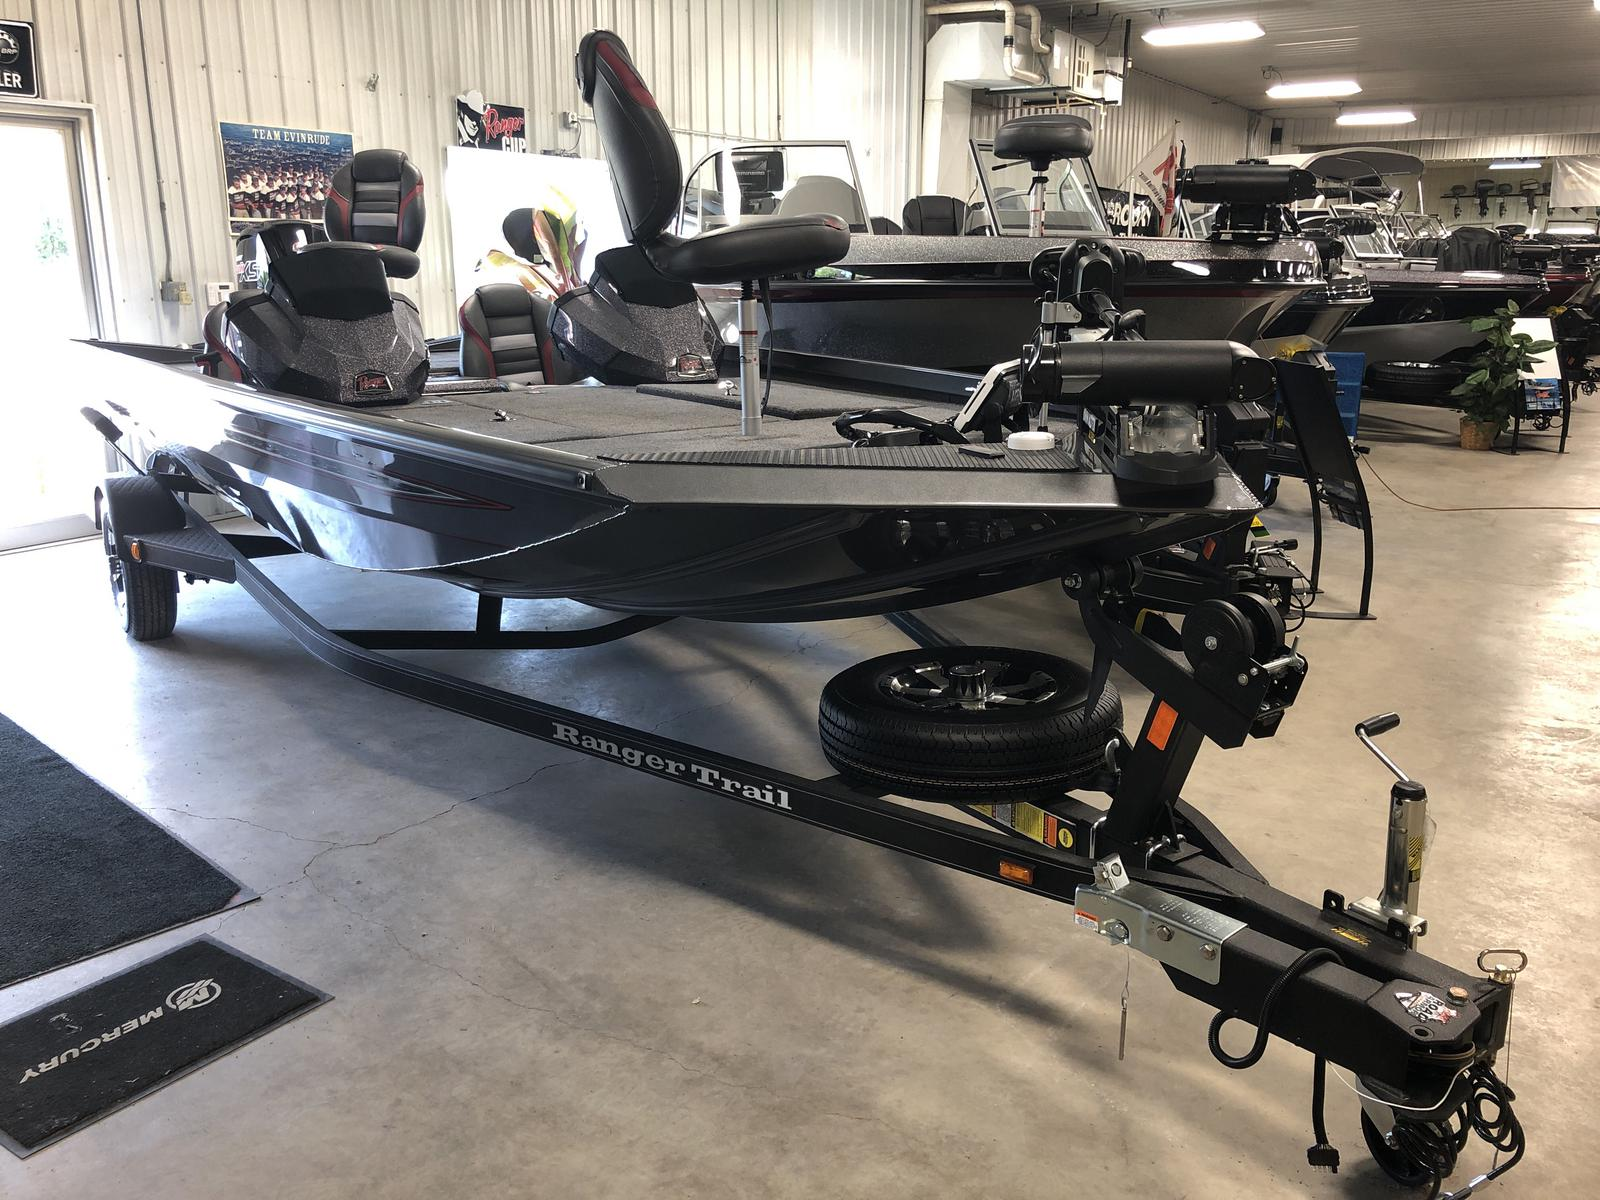 2019 Ranger RT188 for sale in Green Bay, WI. Pamp's Outboard ... on